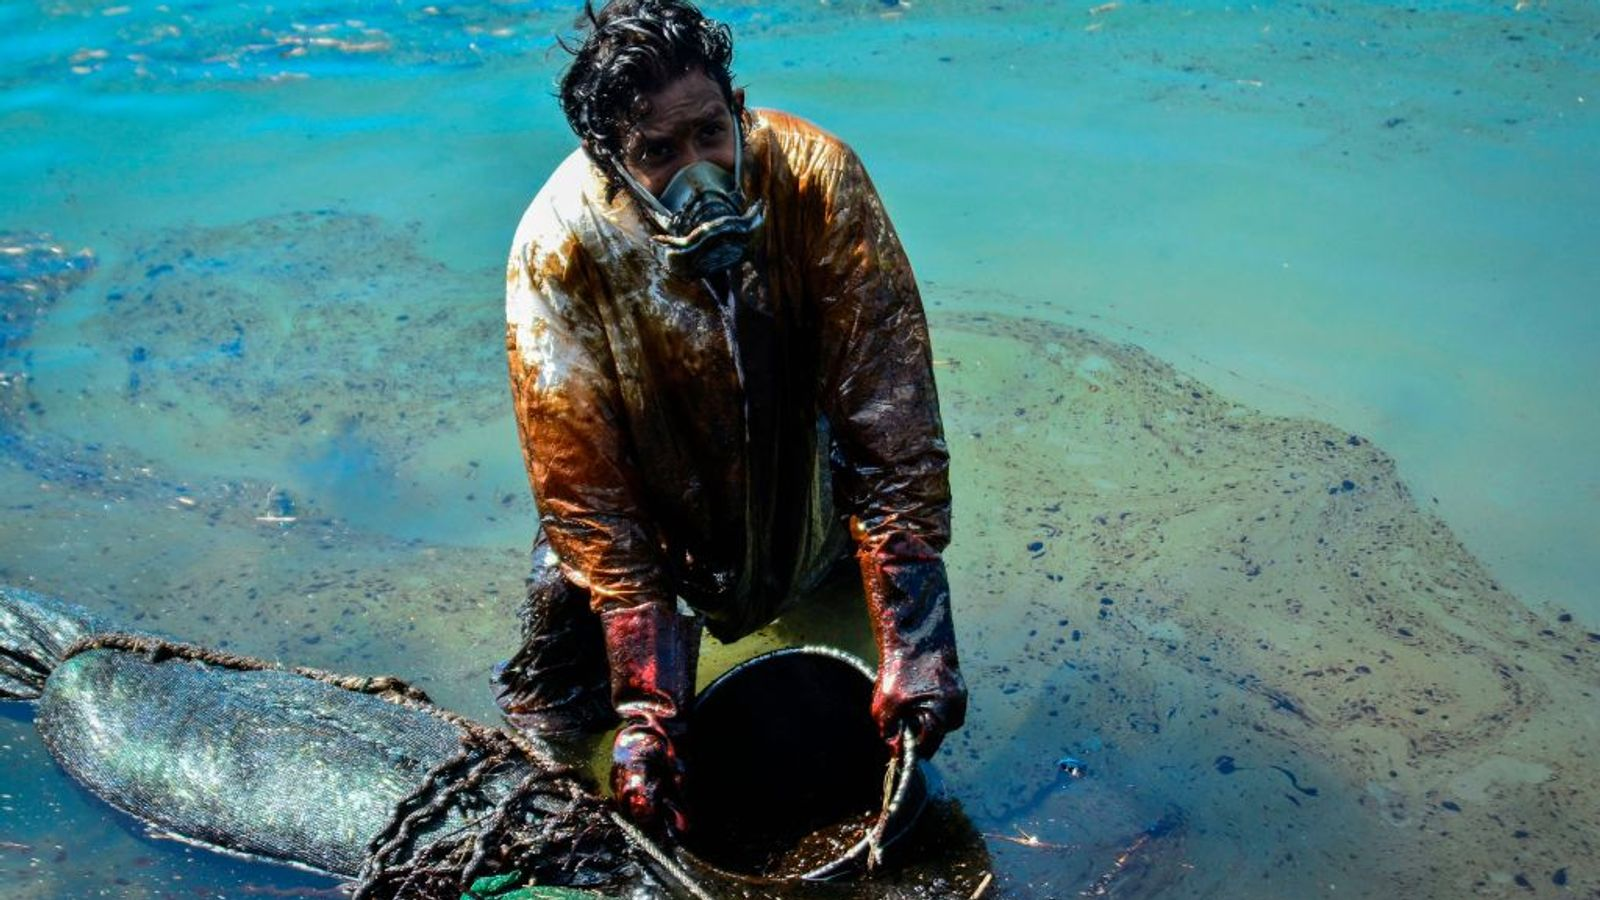 Mauritius oil spill: Ship operator apologises after island nation declares environmental emergency